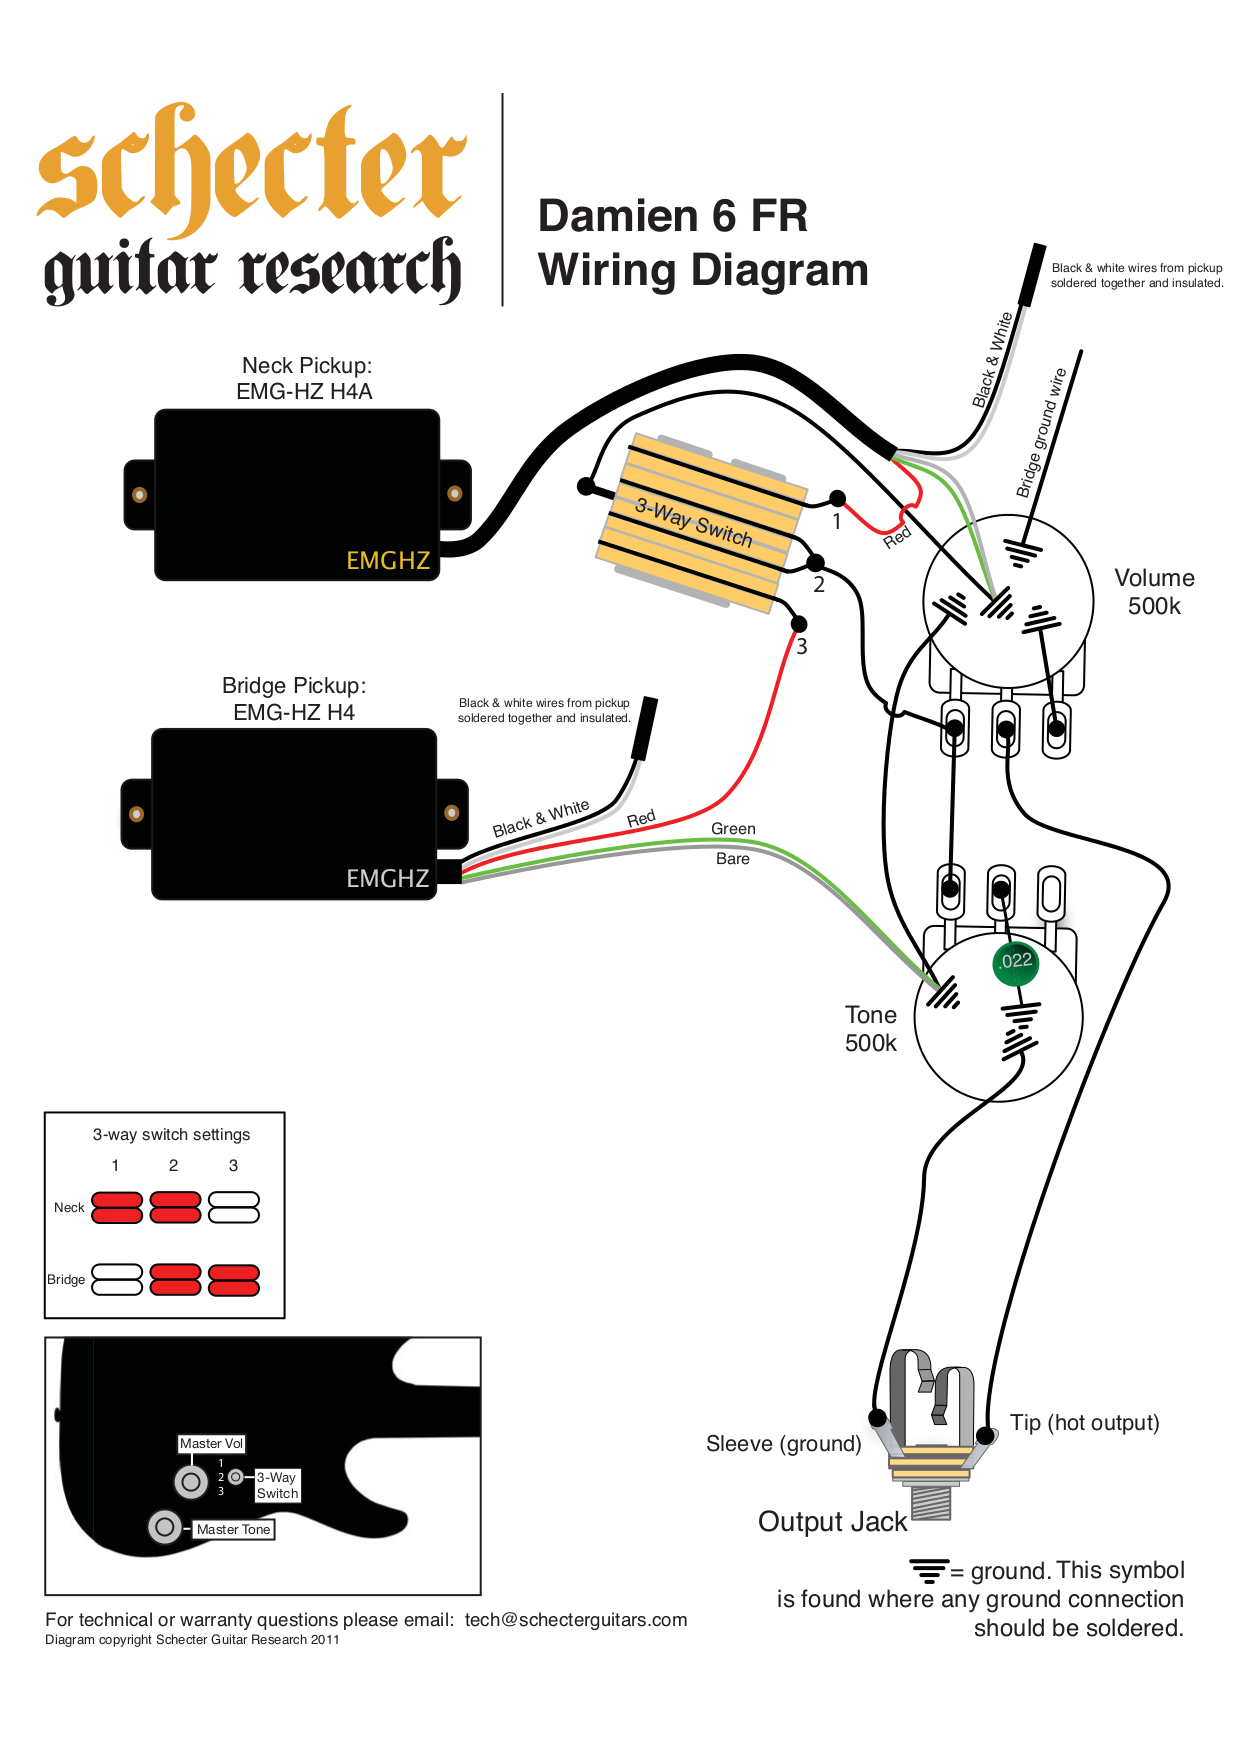 Free Download Gio Guitar Wiring Diagram Library Pickup Diagrams Pdf For Schecter Damien 6 Fr Manual Jackson